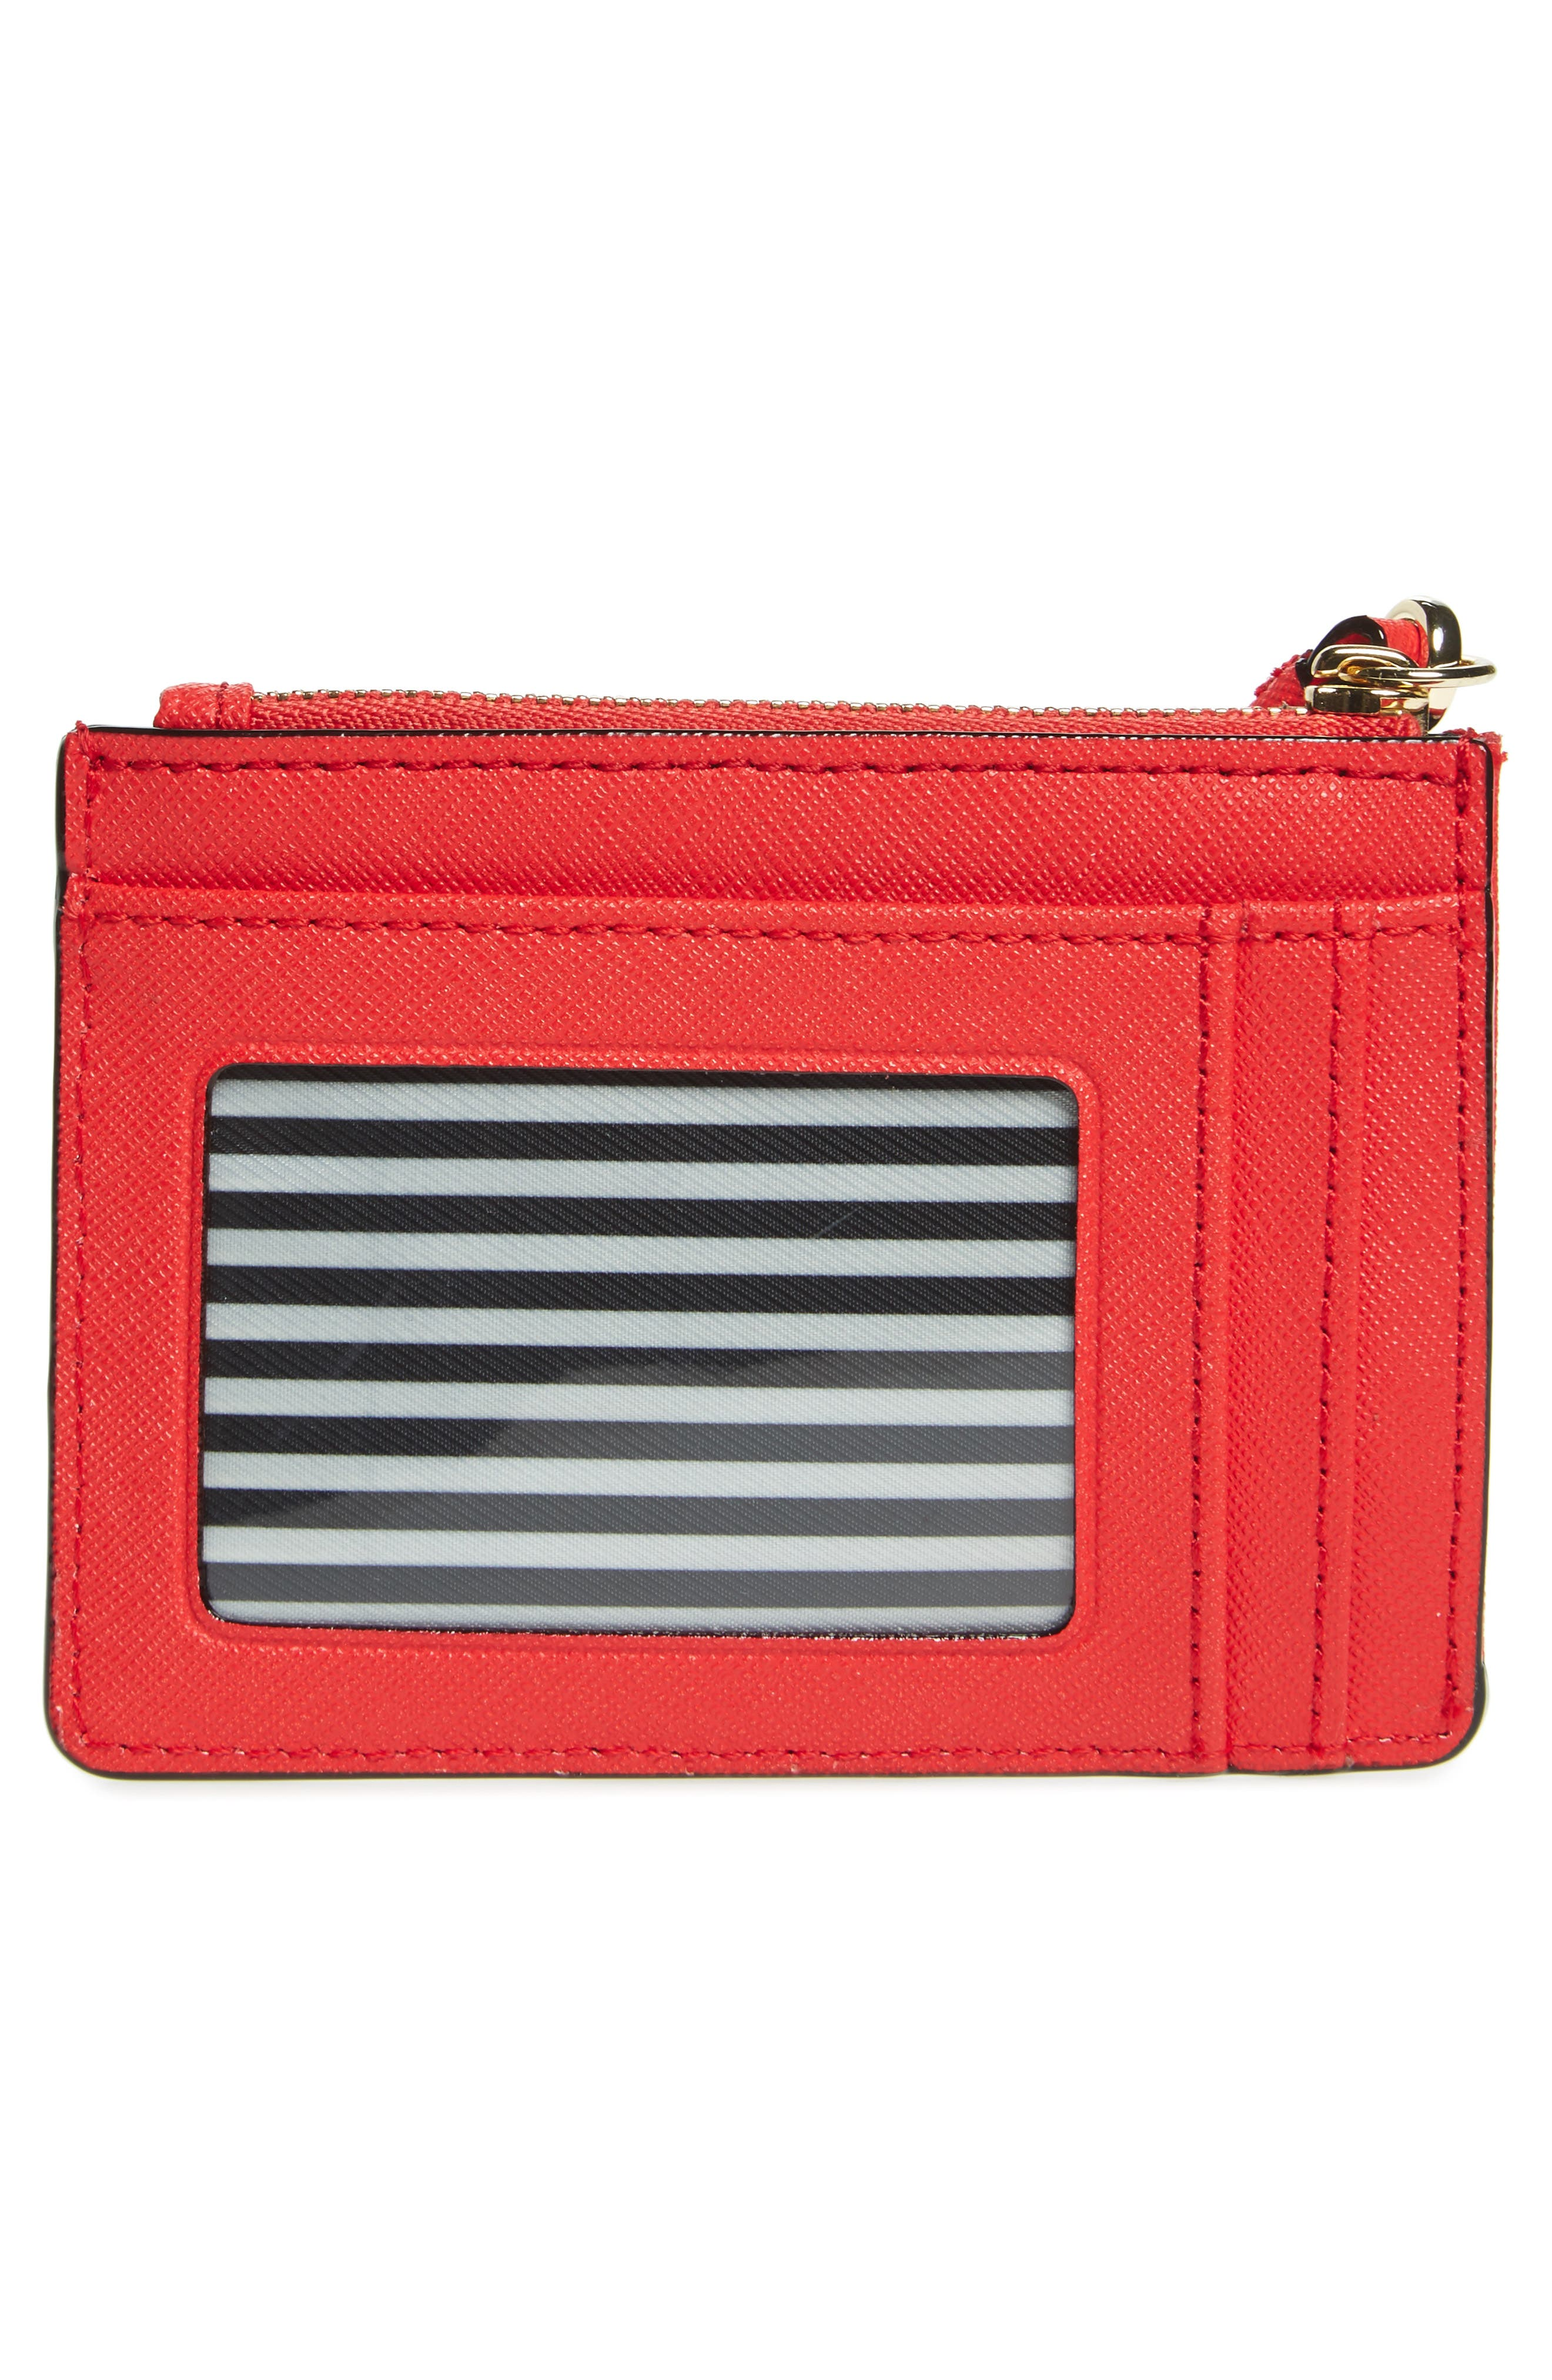 cameron street - mellody leather card case,                             Alternate thumbnail 34, color,